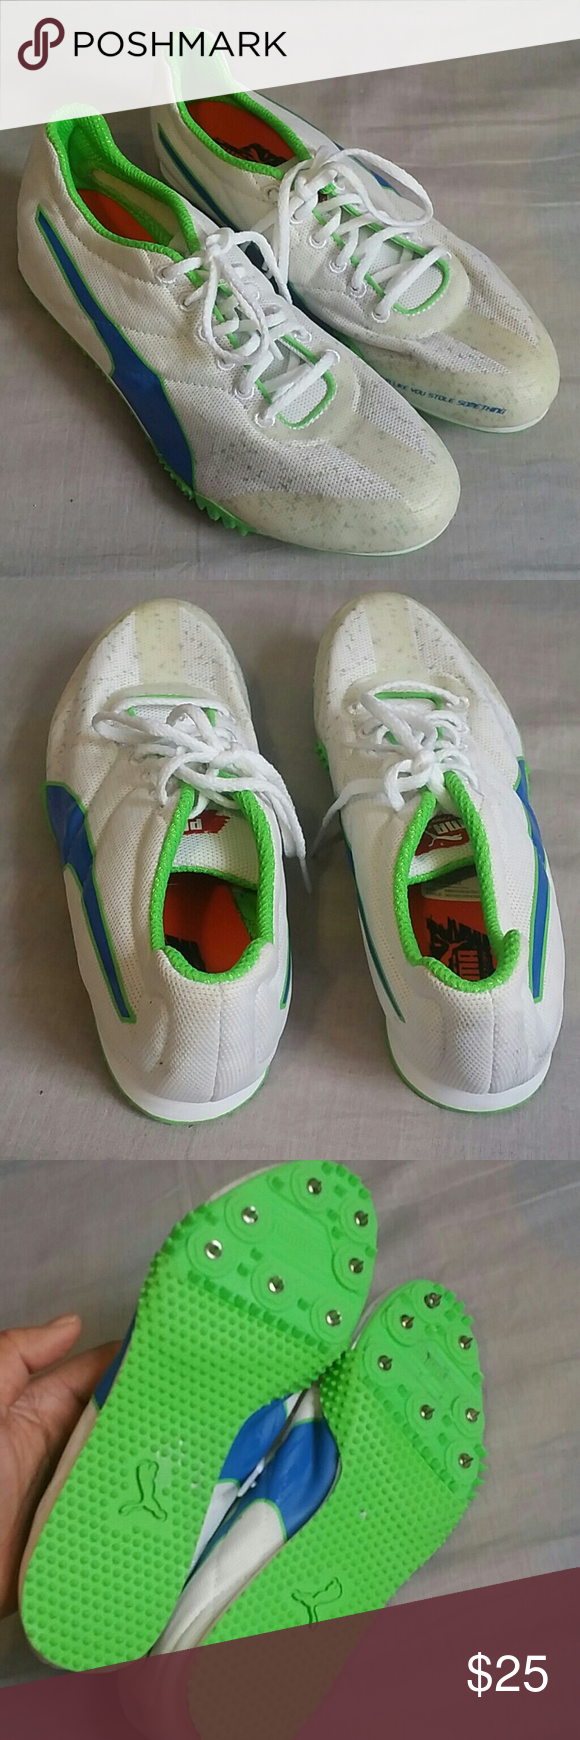 f2629f00c6fc12 Puma Spike Shoes Running 5 M Lace-ups Item NEVER BEEN Used